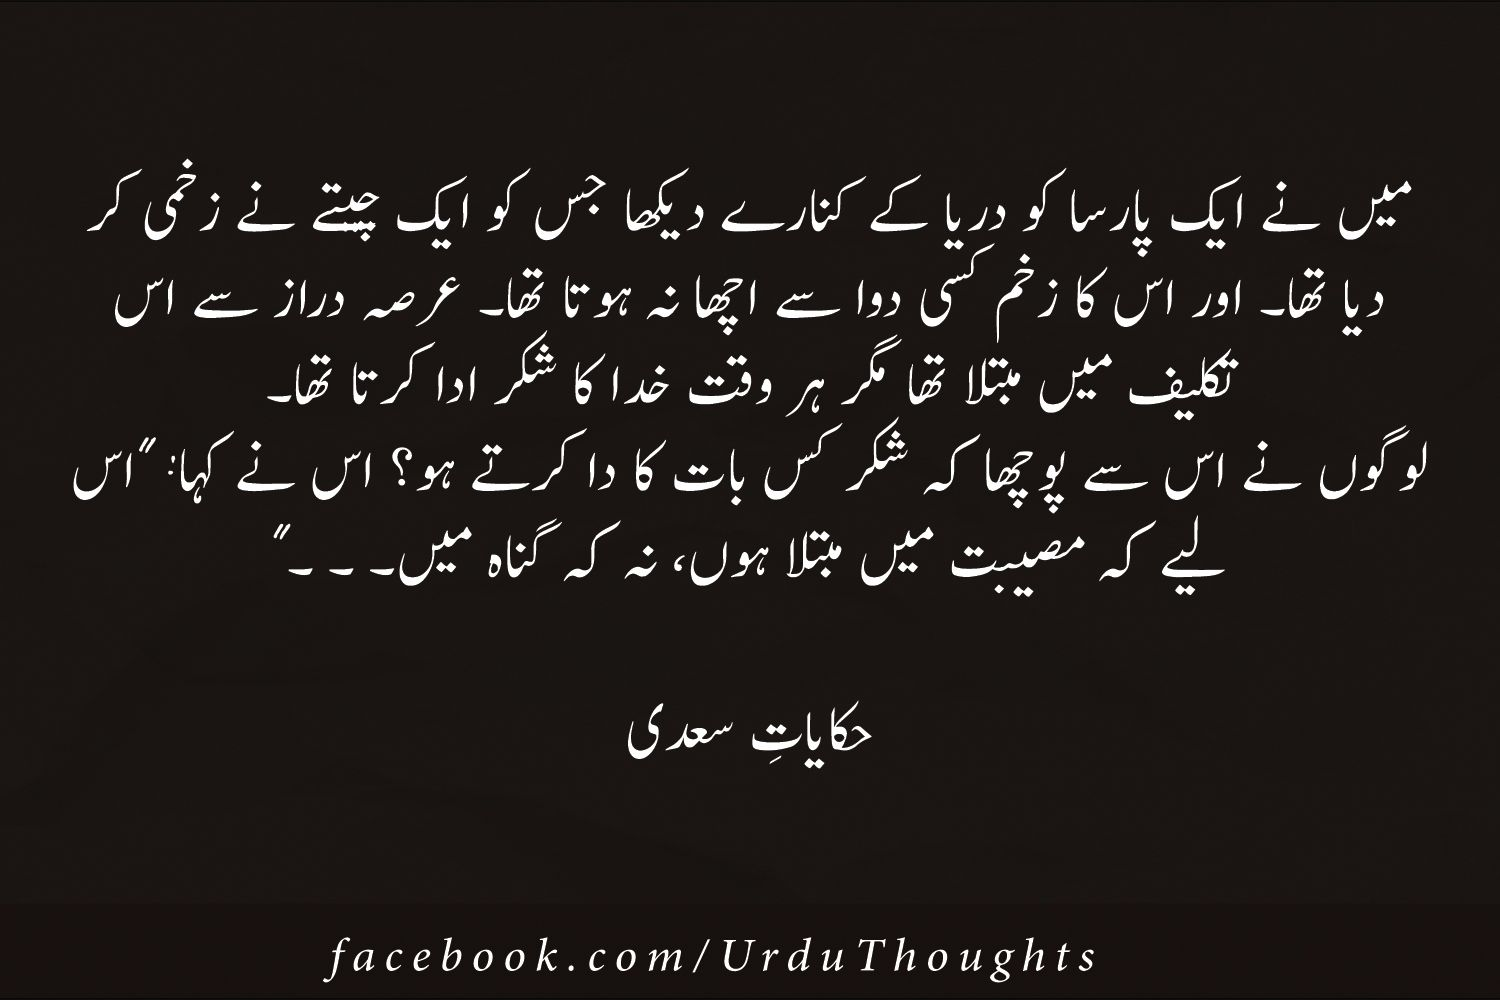 Best Quotes In Urdu Quotes Images In Urdu Life In Urdu Urdu